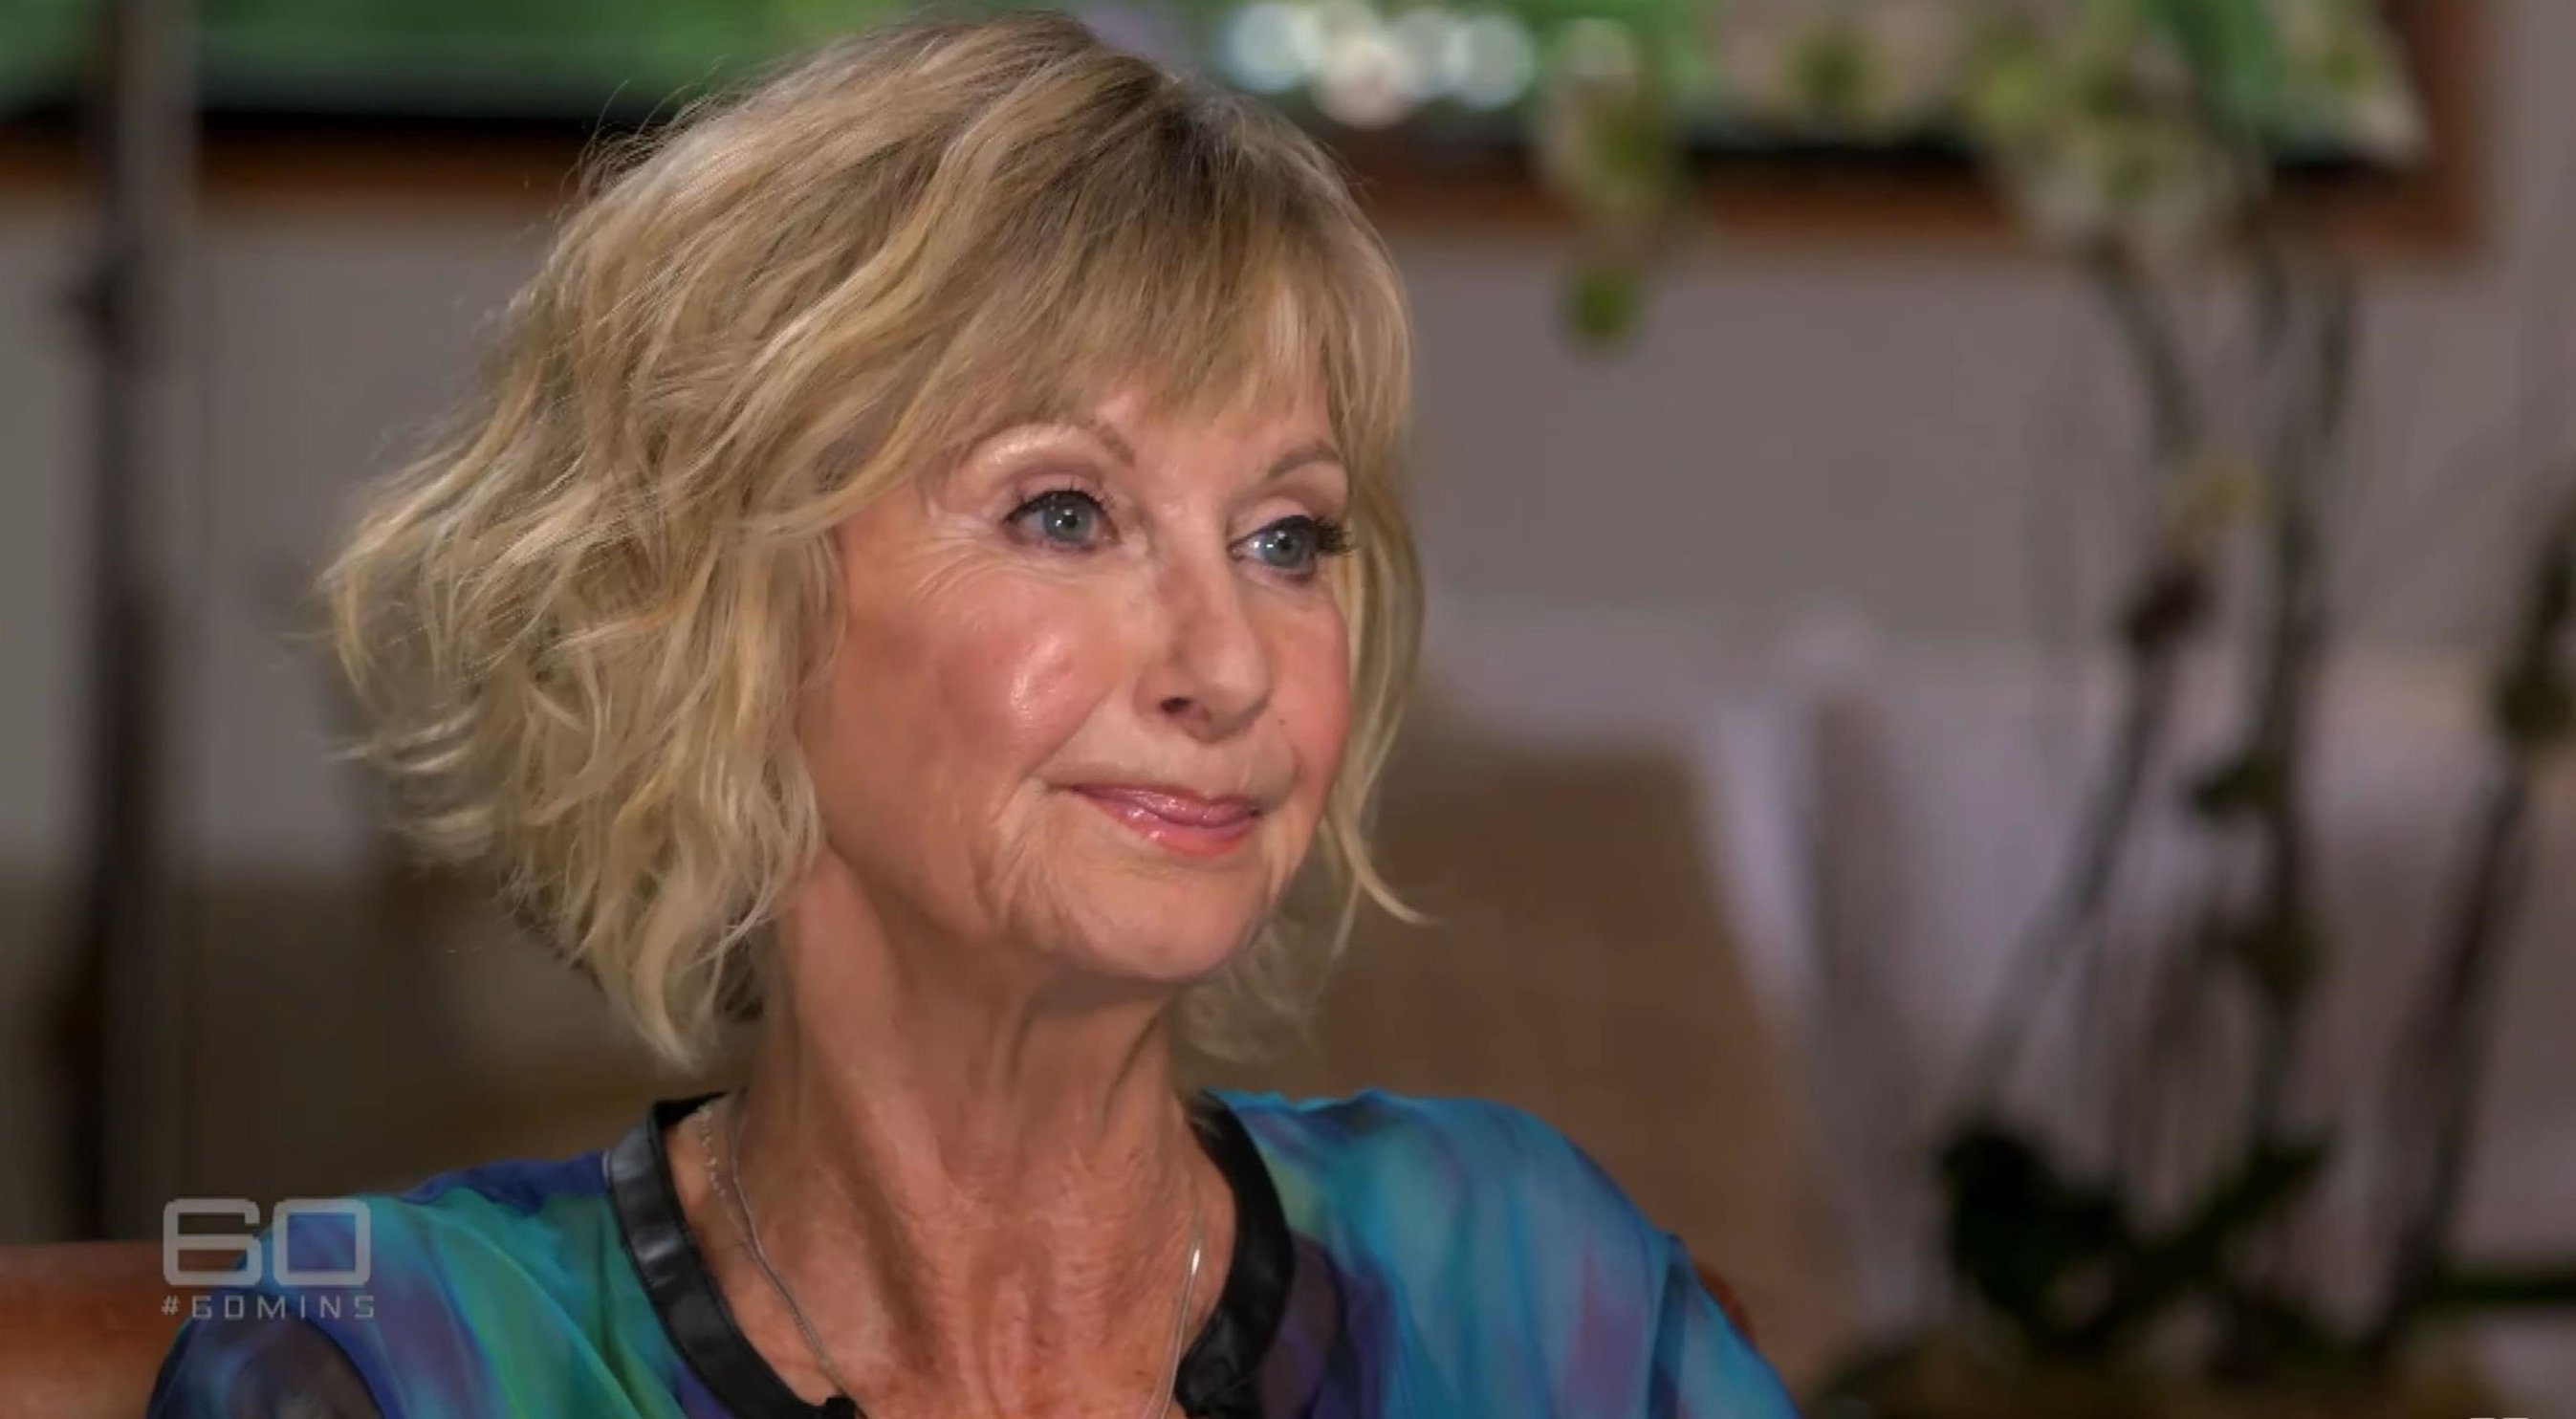 Los Angeles, CA  - Olivia Newton-John opens up about cancer diagnosis in candid 60 Minutes interview. The 70 year-old was diagnosed in 2017, after successfully beating the disease in 1992 and 2013. Speaking to reporter Liz Hayes, Olivia revealed how 'lucky' that she has been through it three times and was 'still here'.